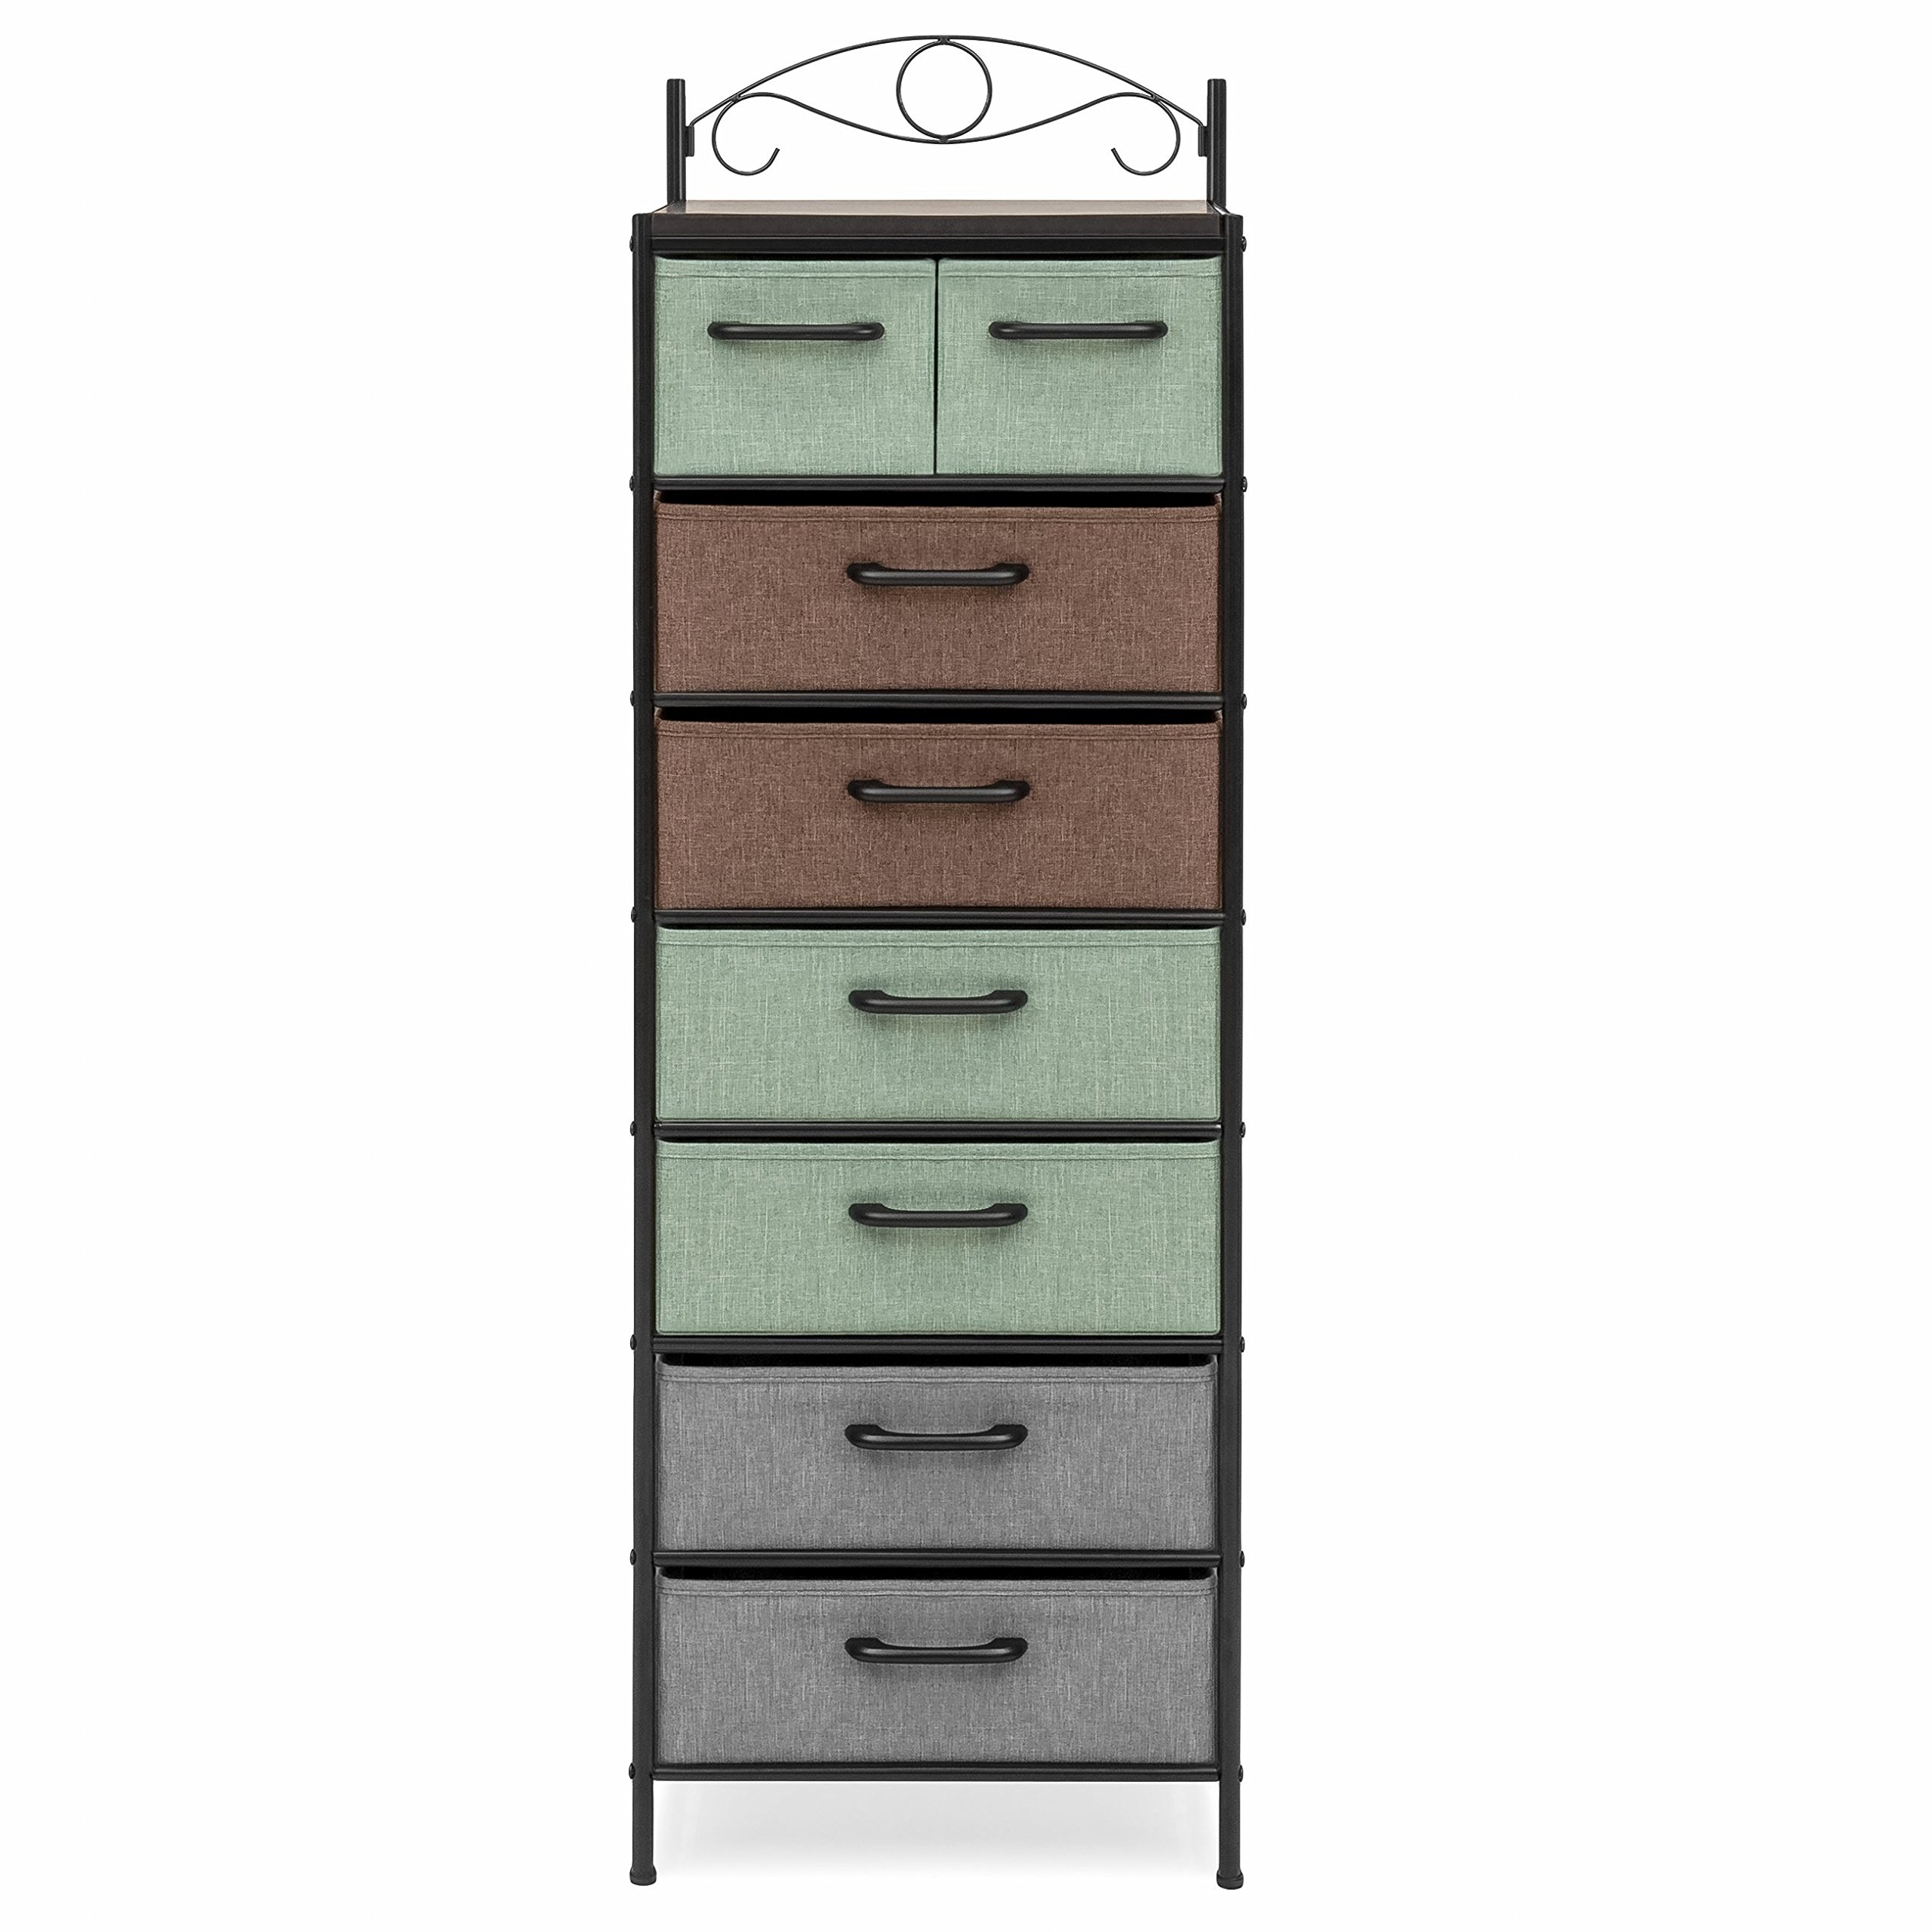 Best Choice Products 8-Drawer Metal Tower Storage Cabinet (Multicolor) by Best Choice Products (Image #3)